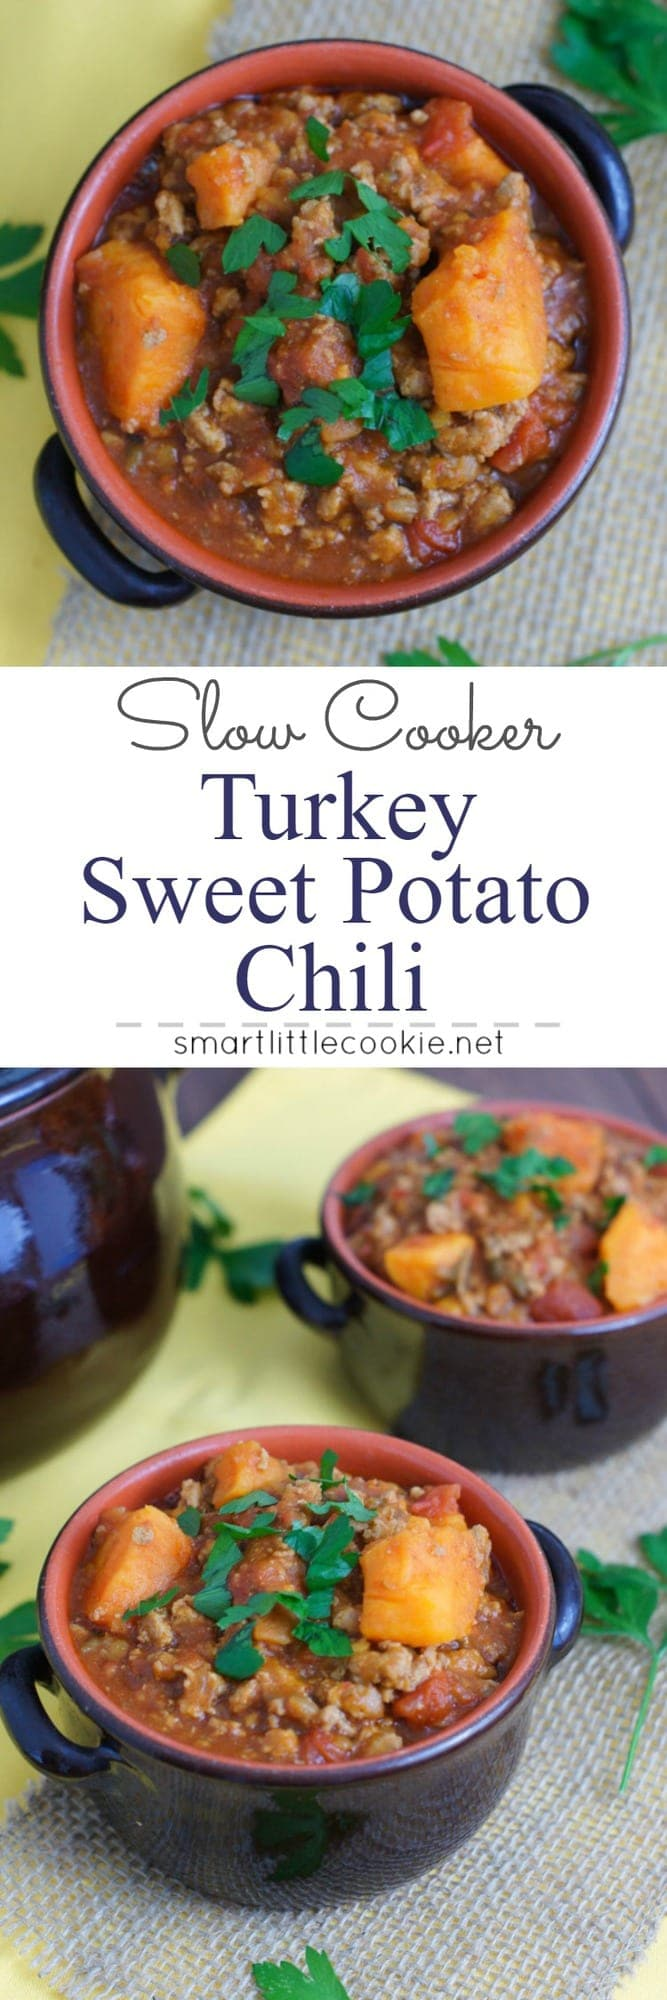 This delicious turkey and sweet potato chili is warm, comforting and made in the slow cooker for ease of cooking. The perfect meal for a chilly fall evening! #slowcooker #crockpot #chili